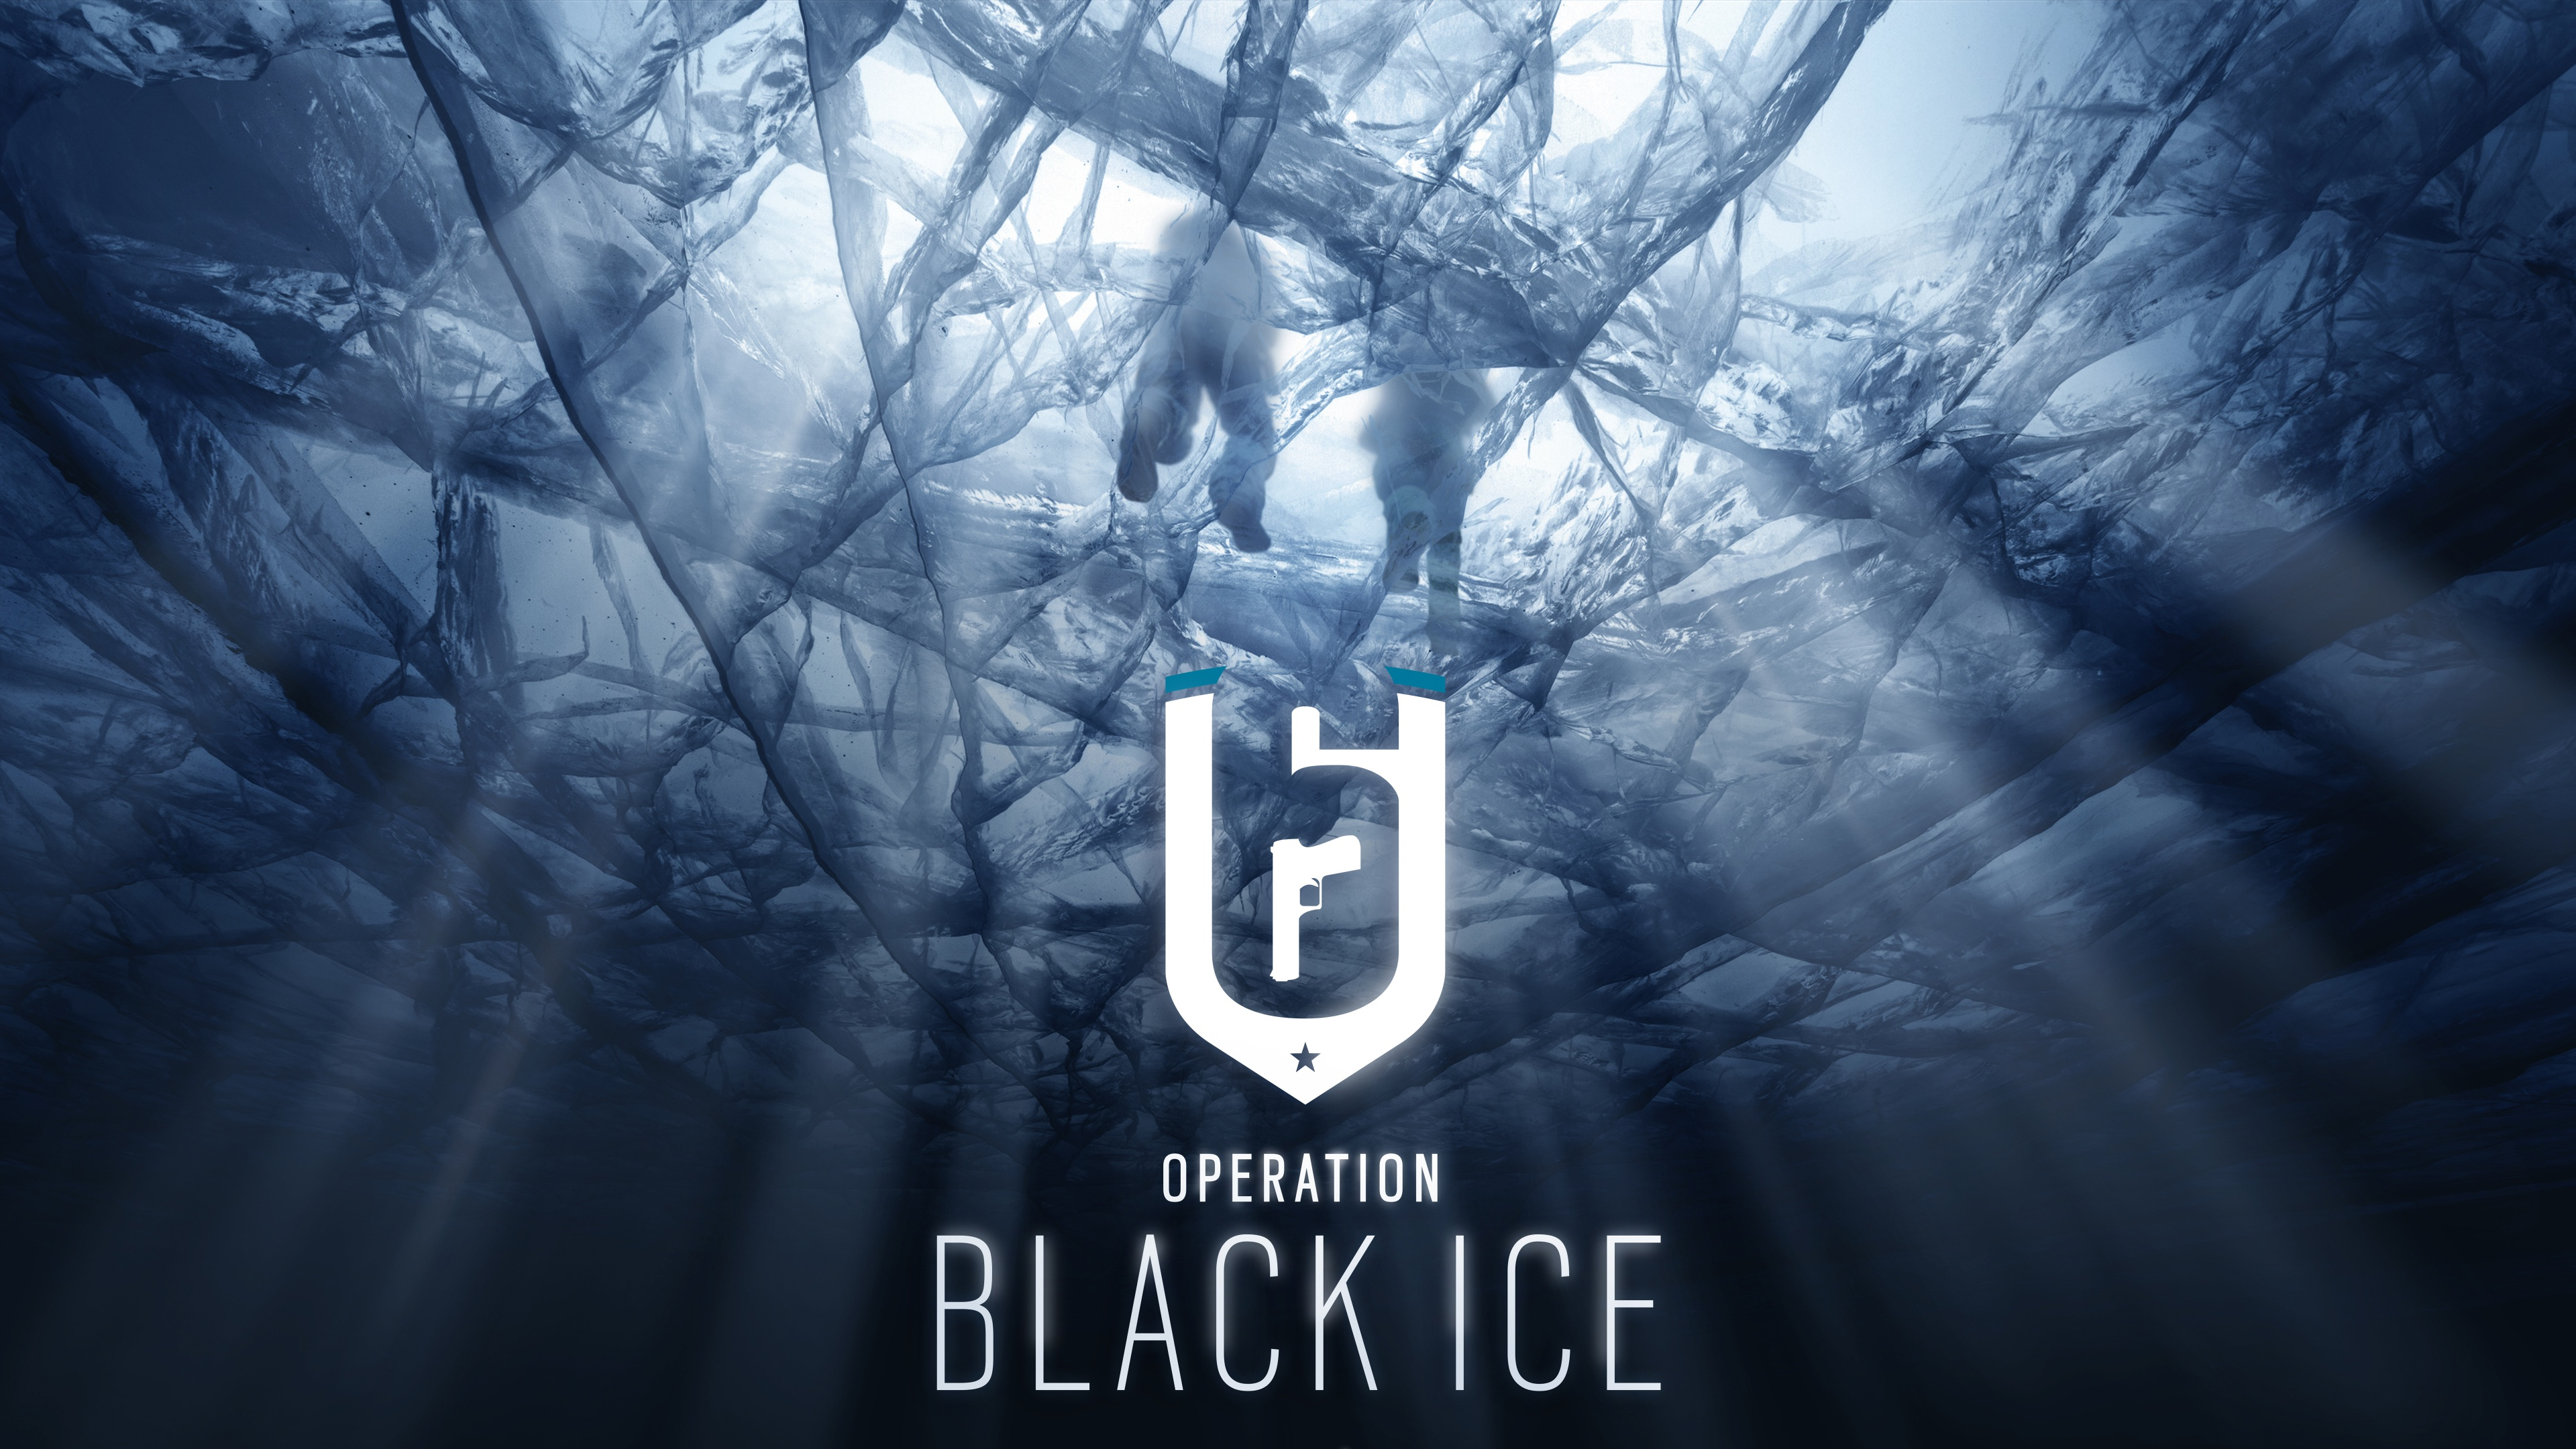 23 Operation Black Ice Wallpapers On Wallpapersafari